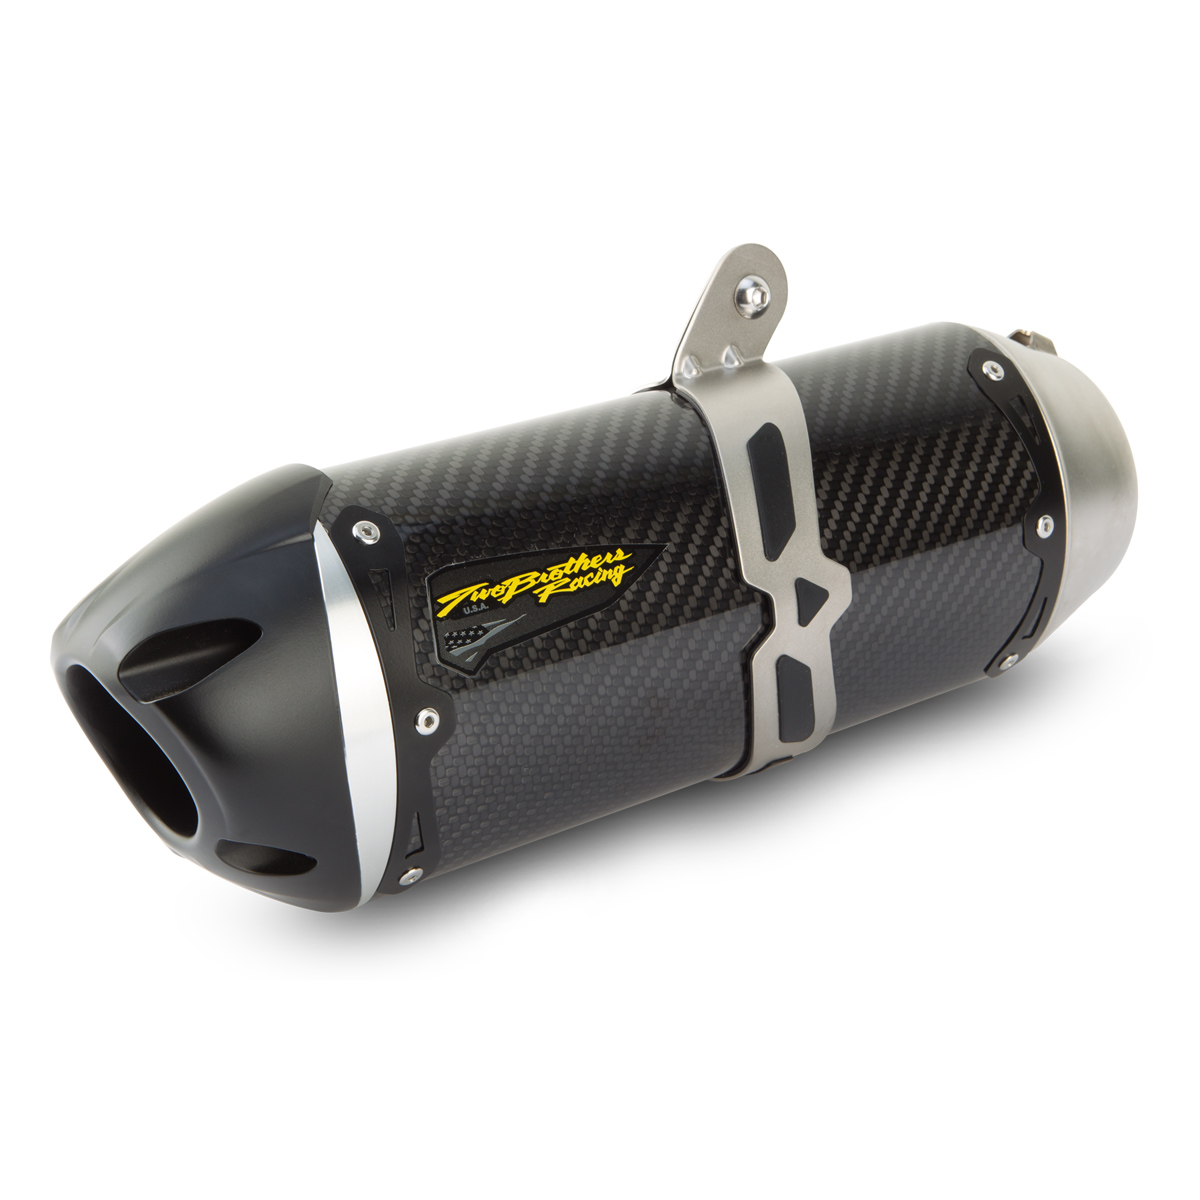 Two Brothers Racing  S1R Black Series Slip-On exhaust 005-3850407-S1B